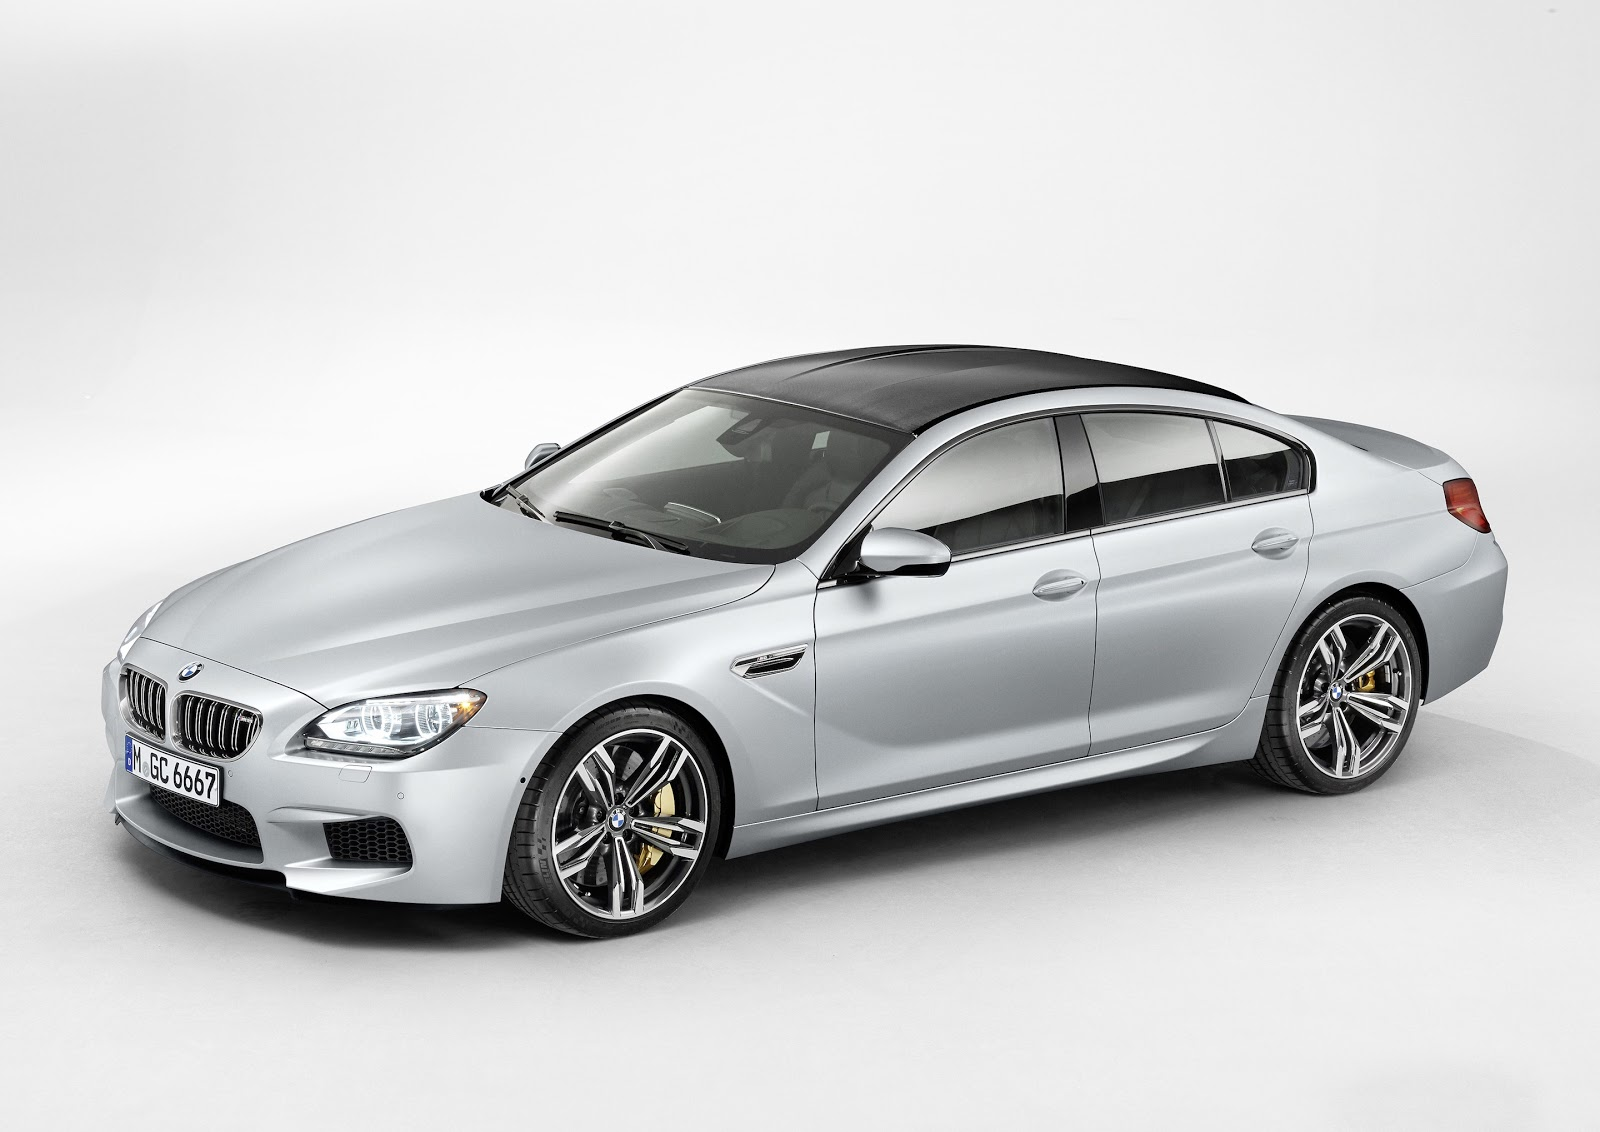 The New Bmw M6 Gran Coupe Released Gallery Bmw Markham